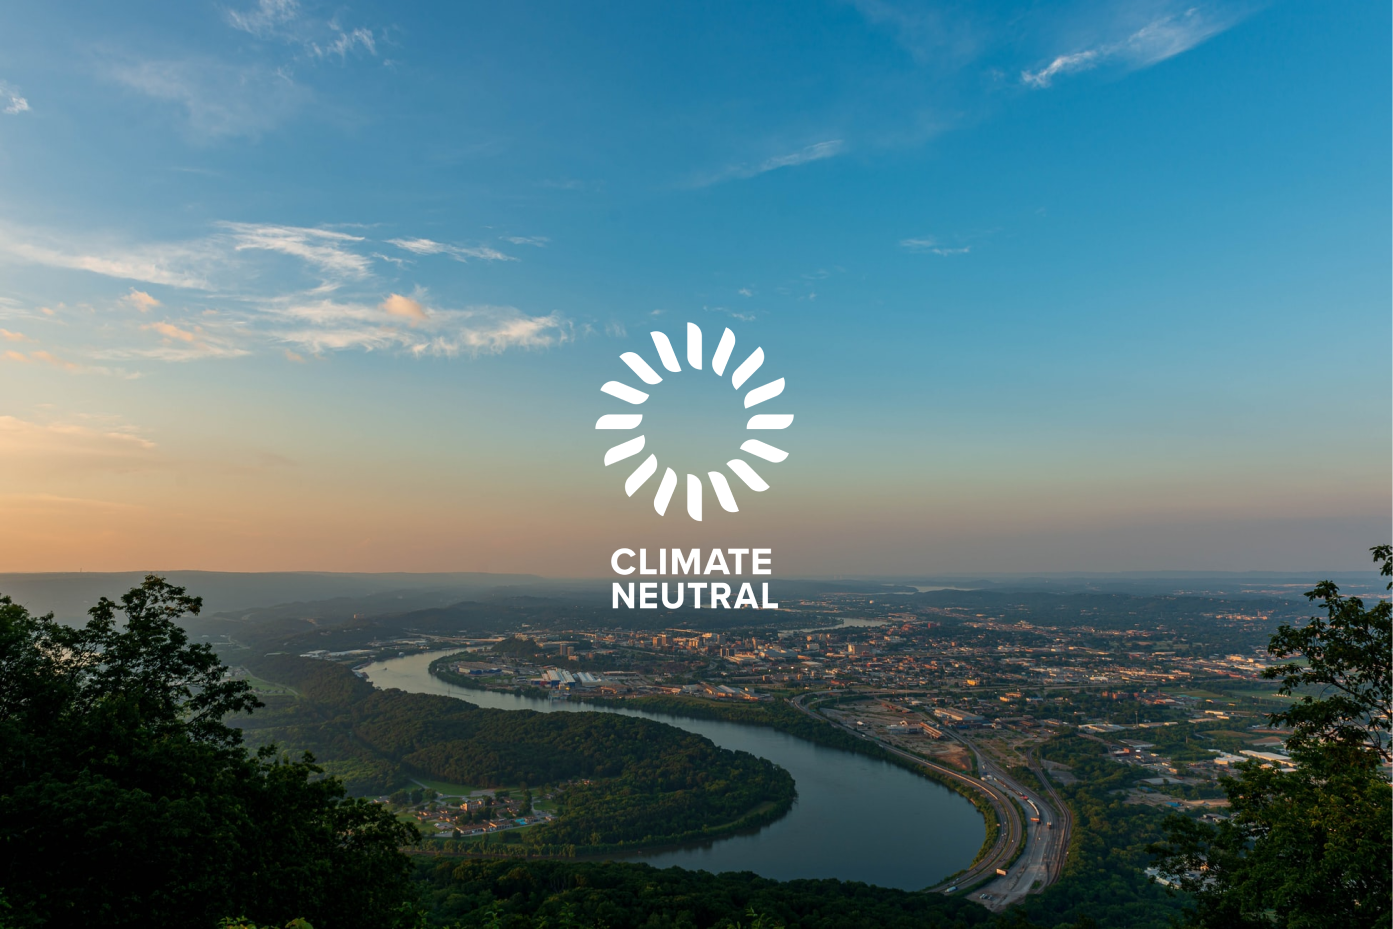 Panoramic aerial of Chattanooga with the Climate Neutral logo.